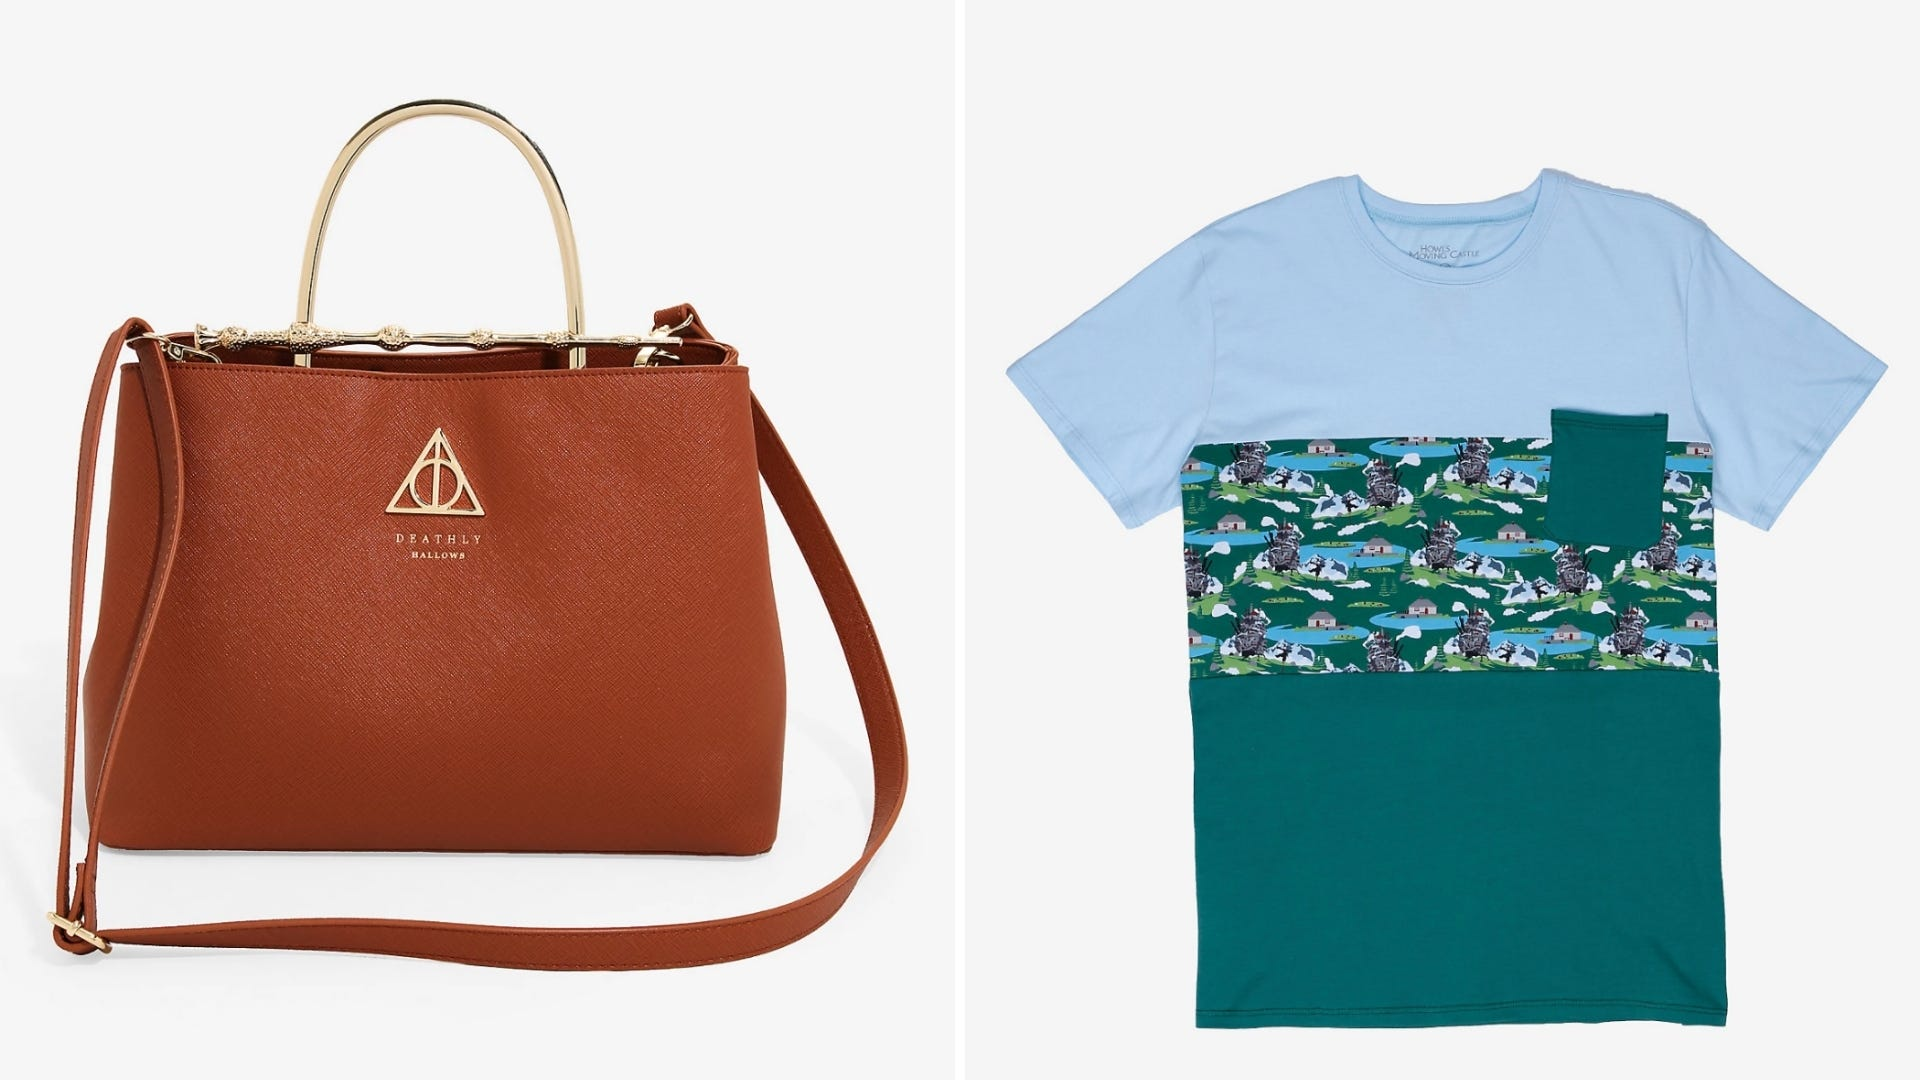 A brown leather purse and a blue and green t-shirt